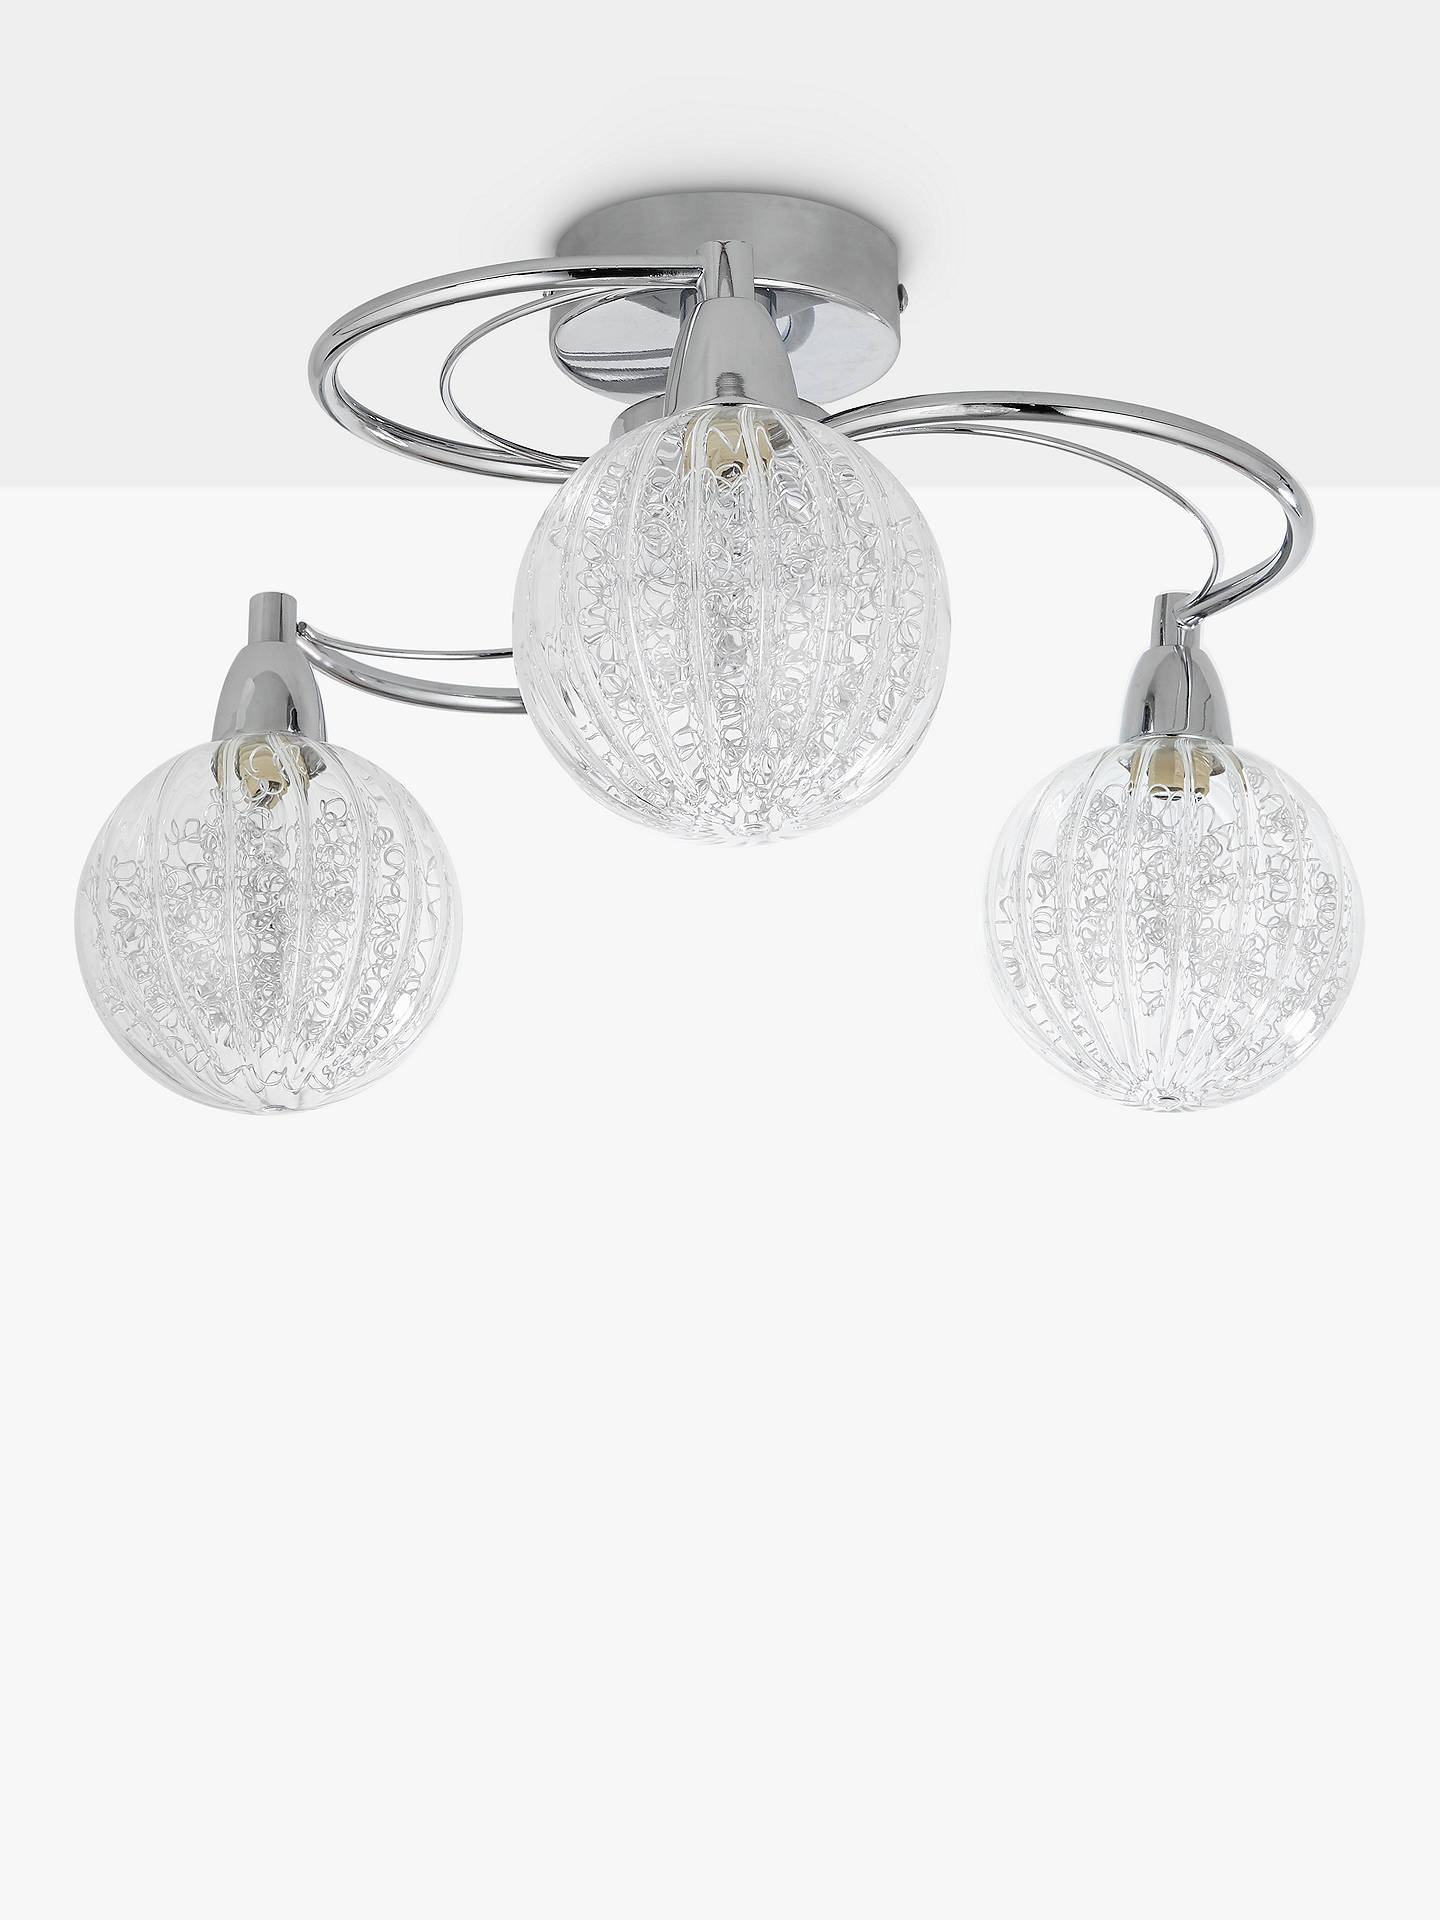 Persevering New Colorful Art Flower Amber Glass Chandelier Lighting Chandeliers